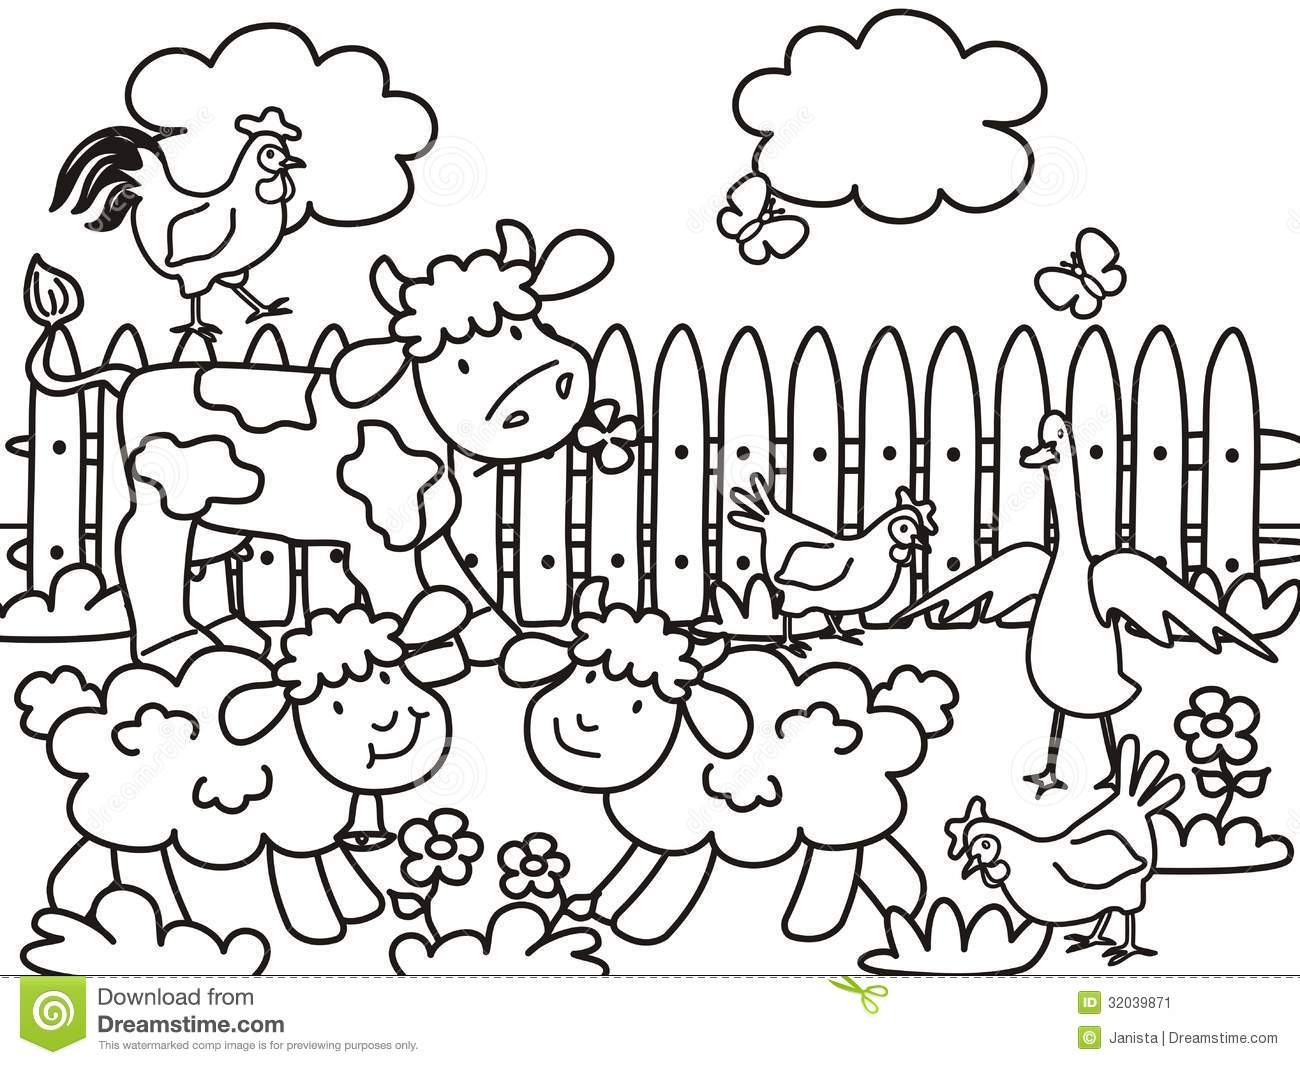 - Farm Animals Coloring Book, Vector Illustration Stock Vector